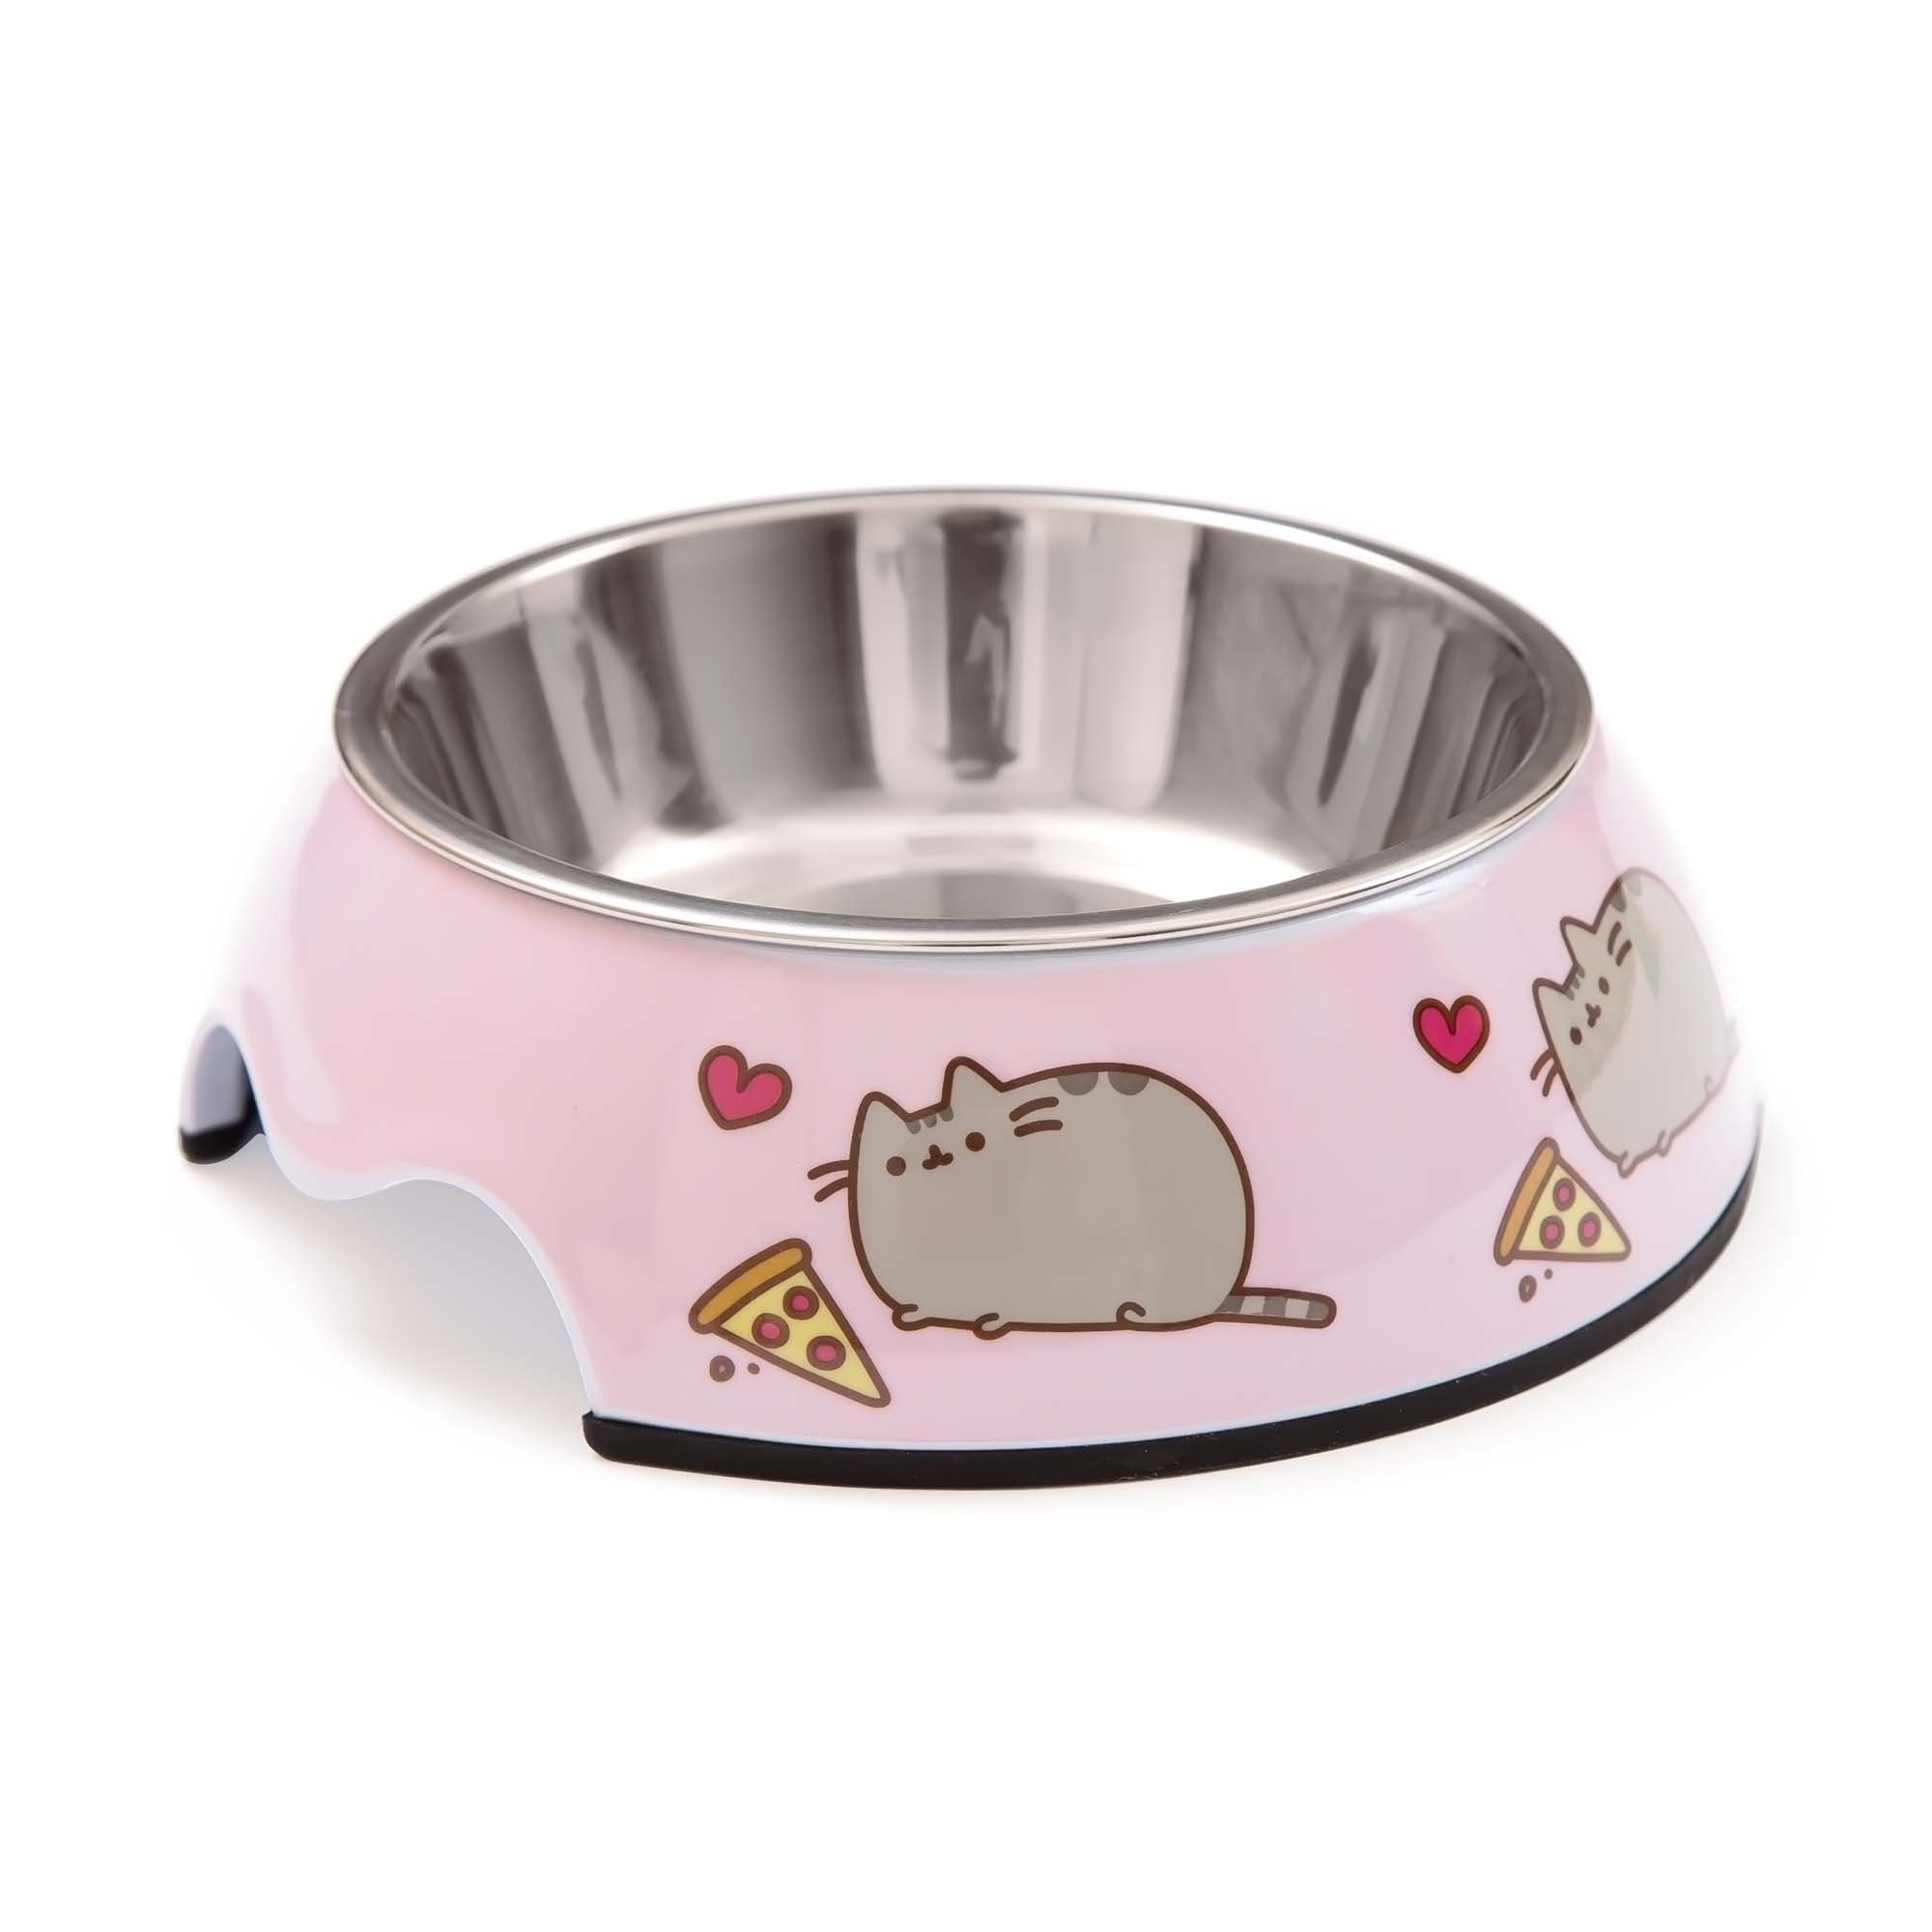 james pin voice with andrew meal bowl food day timed recorder automatic feeder pet wet